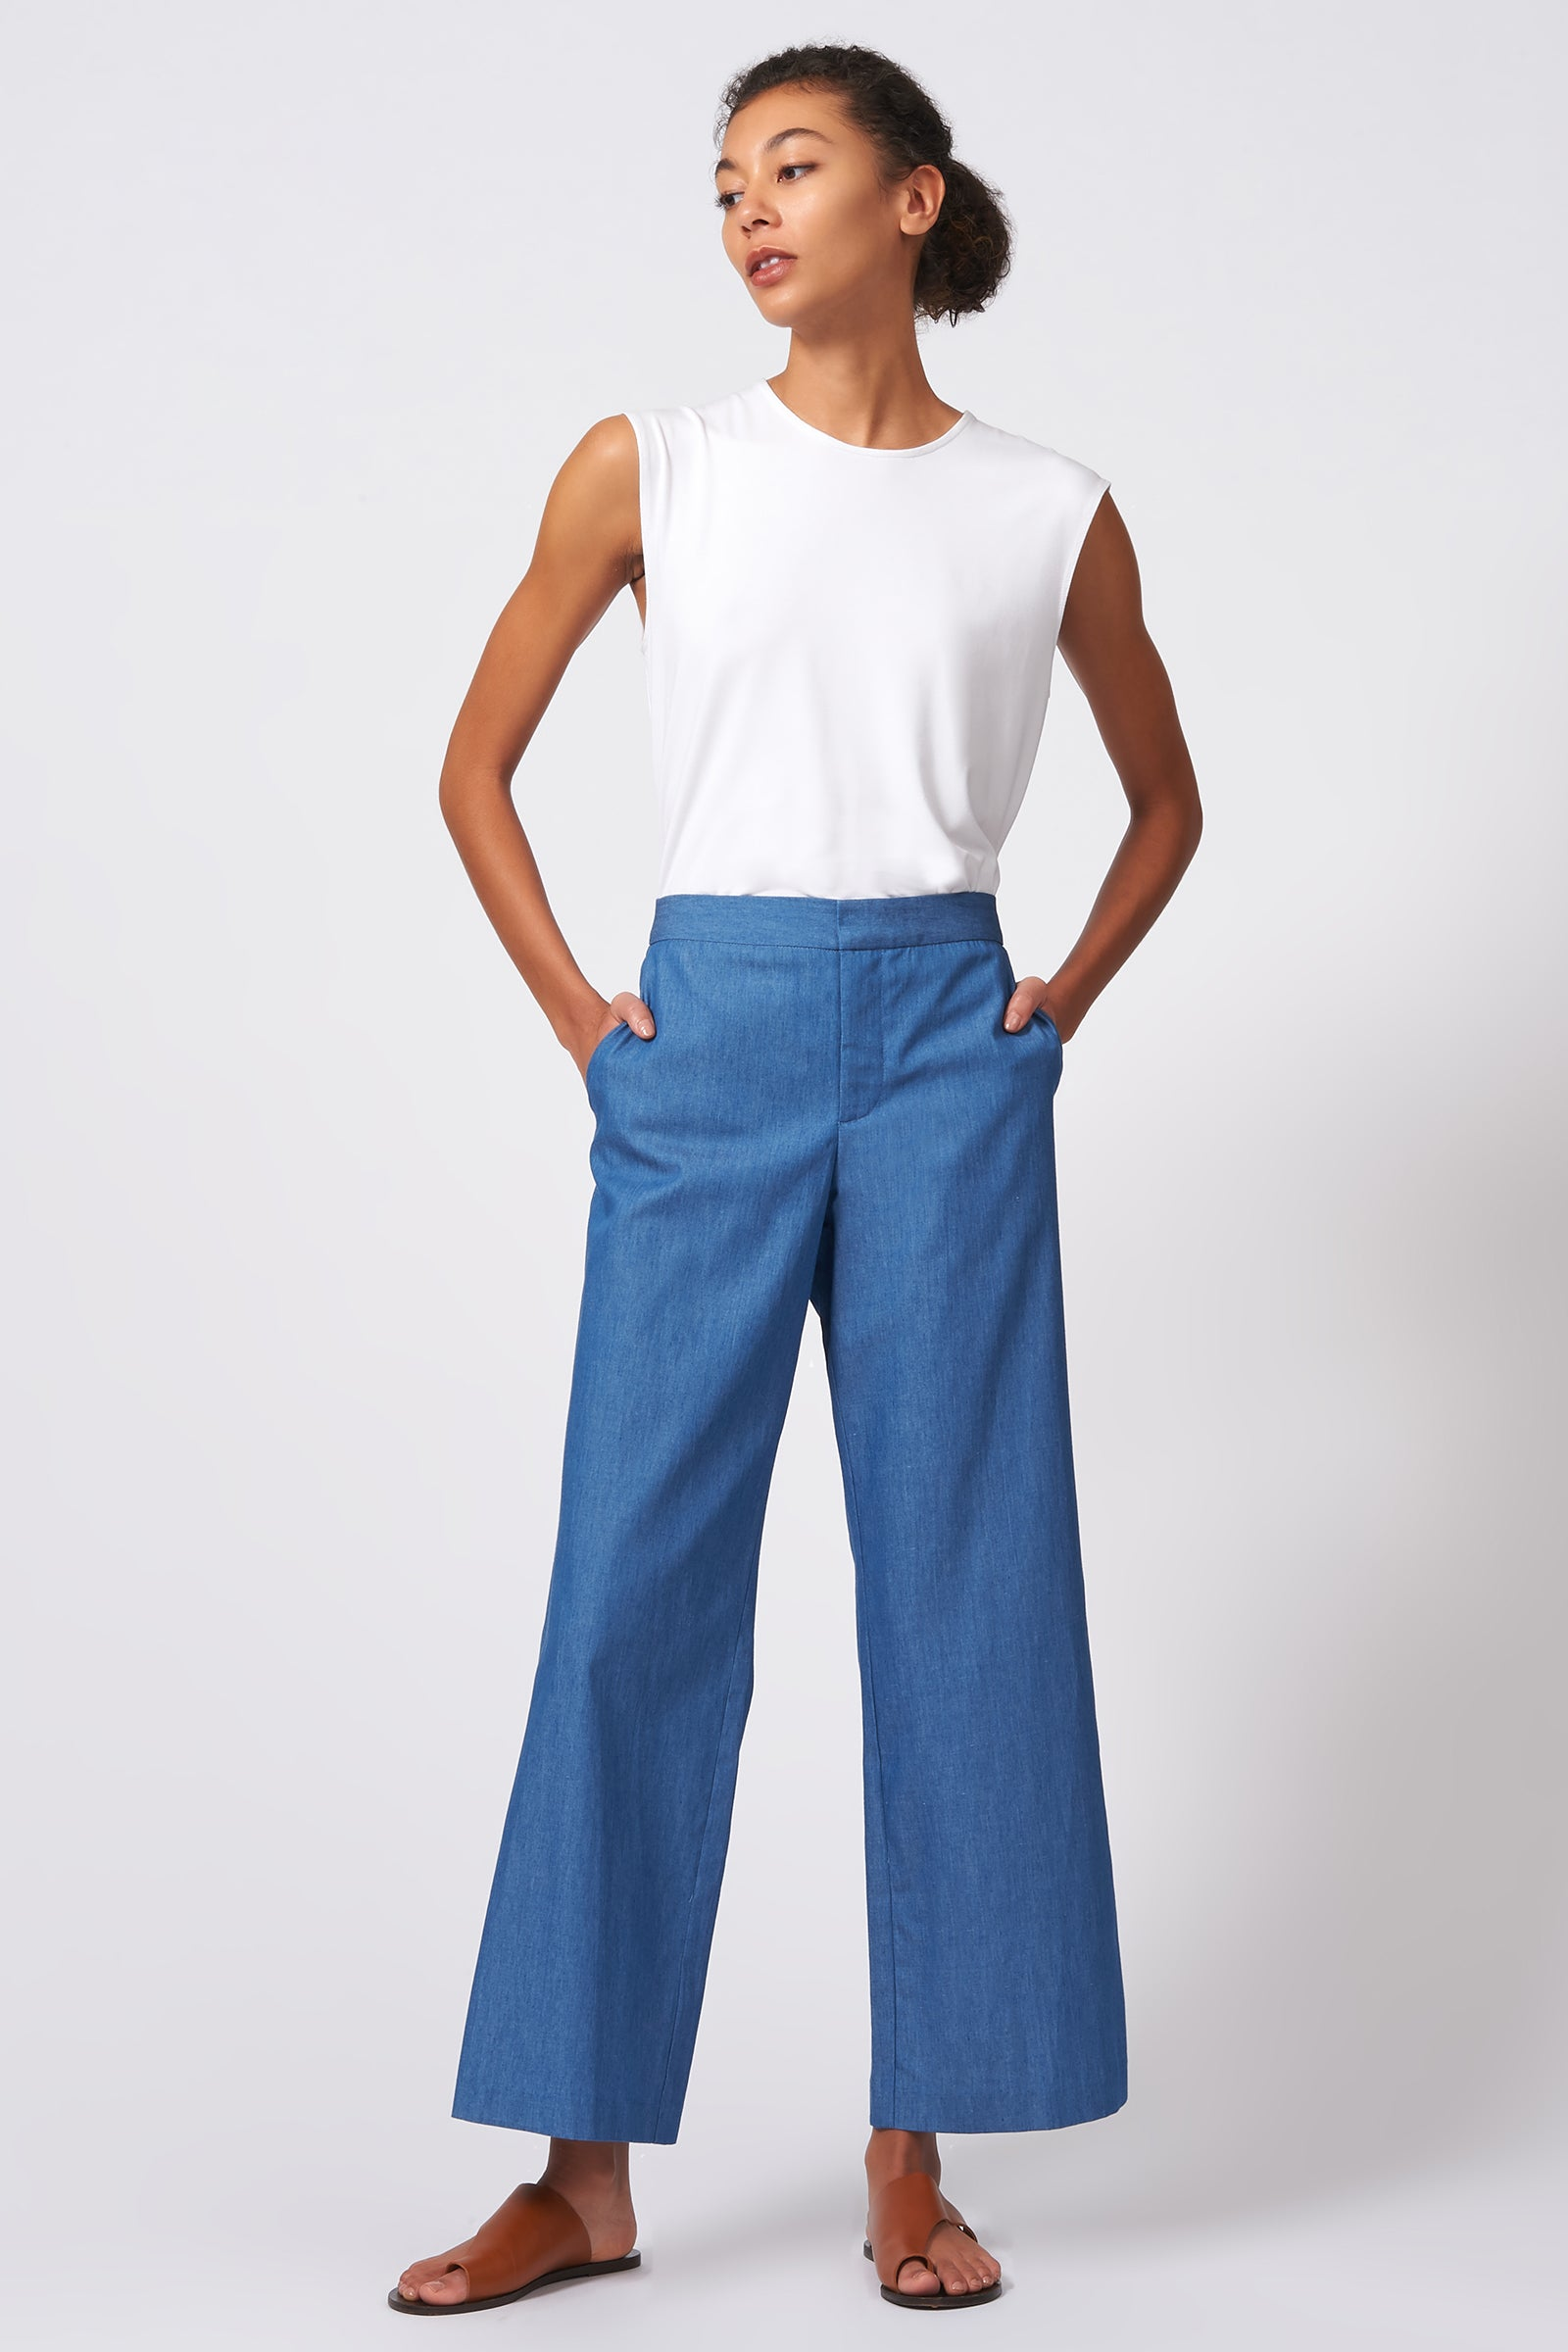 Kal Rieman Flat Front Trouser in Light Indigo on Model Full Front View